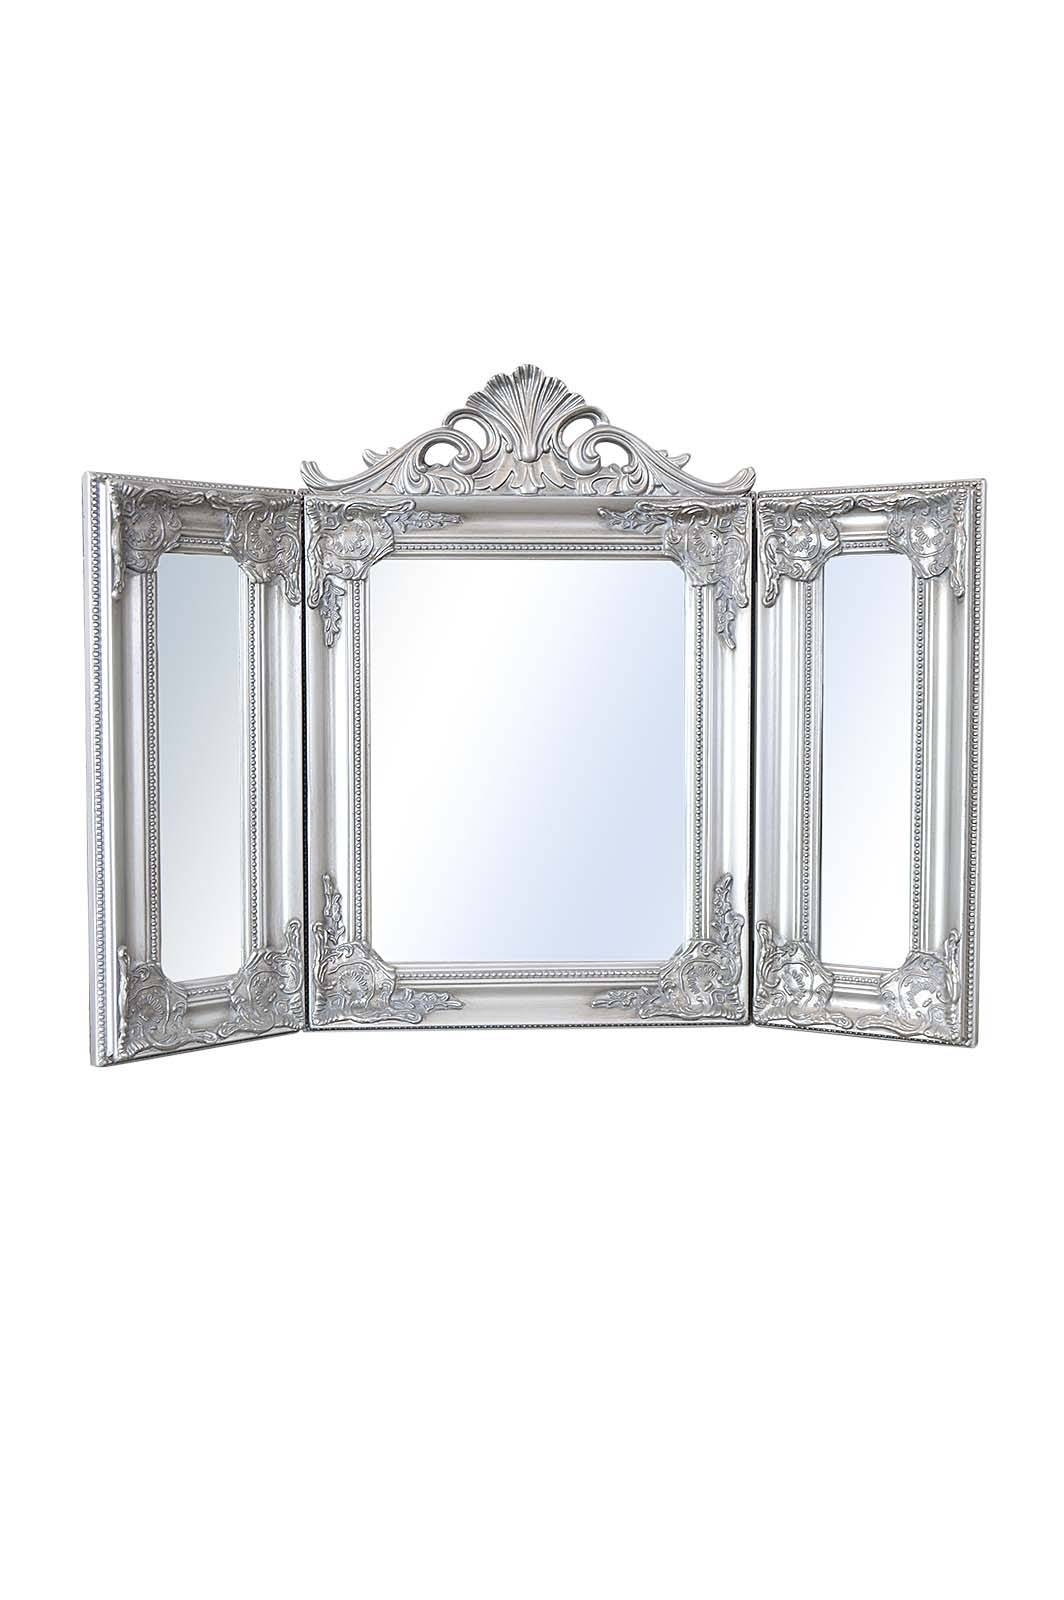 Elegant Silver Antique Style Design Free Standing Dressing Table Regarding Silver Dressing Table Mirrors (View 11 of 15)